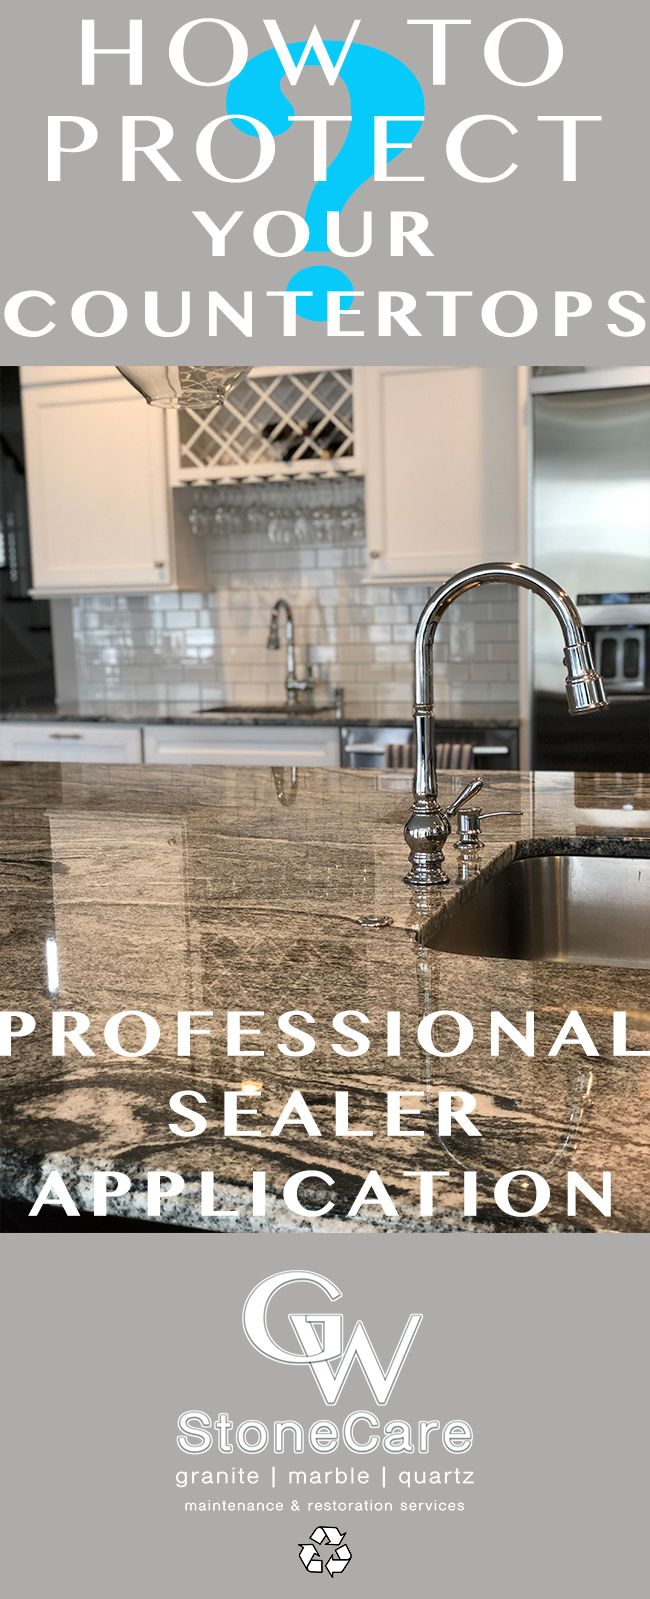 It Is Extremely Important To Keep The Sealer Application On Your Natural Stone Countertops Up T Natural Stone Countertops Natural Stone Flooring Stone Flooring